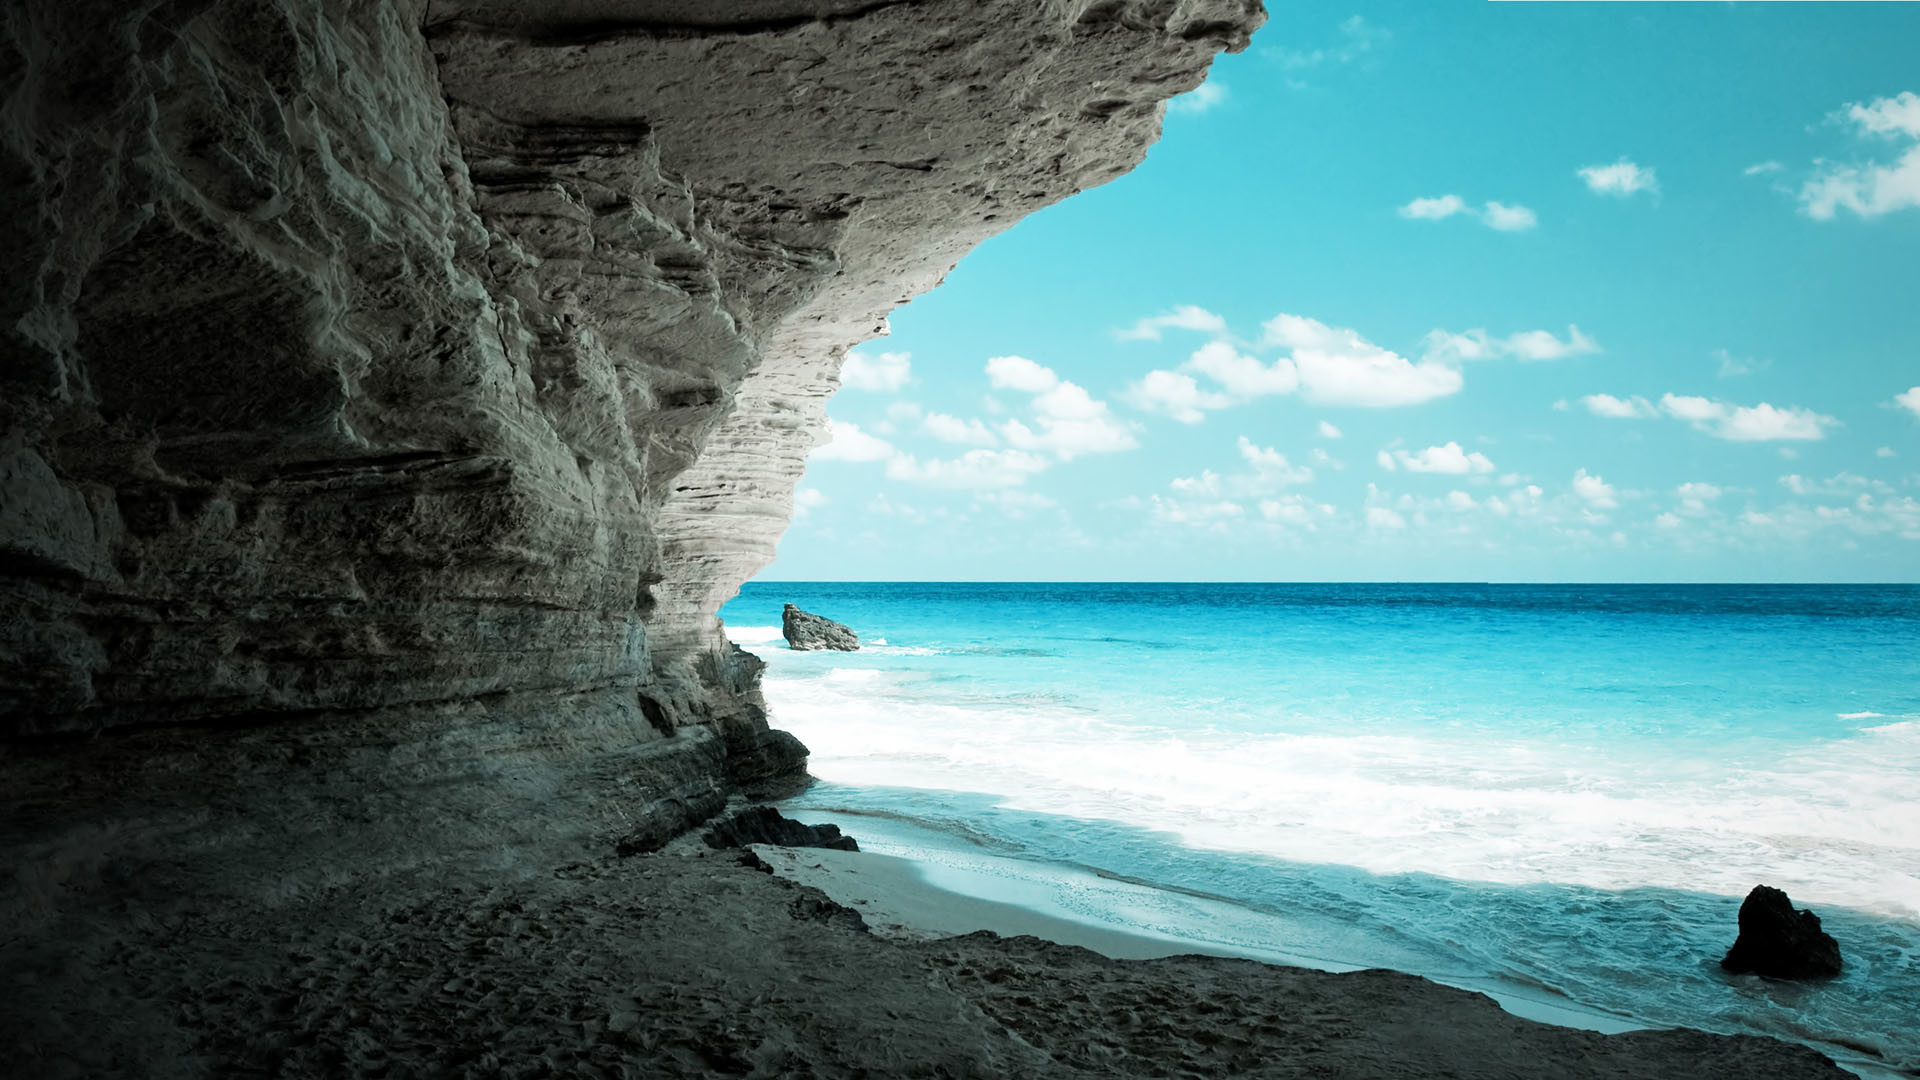 1920x1080 amazing-full-hd-wallpaper-cave-on-the-beach-